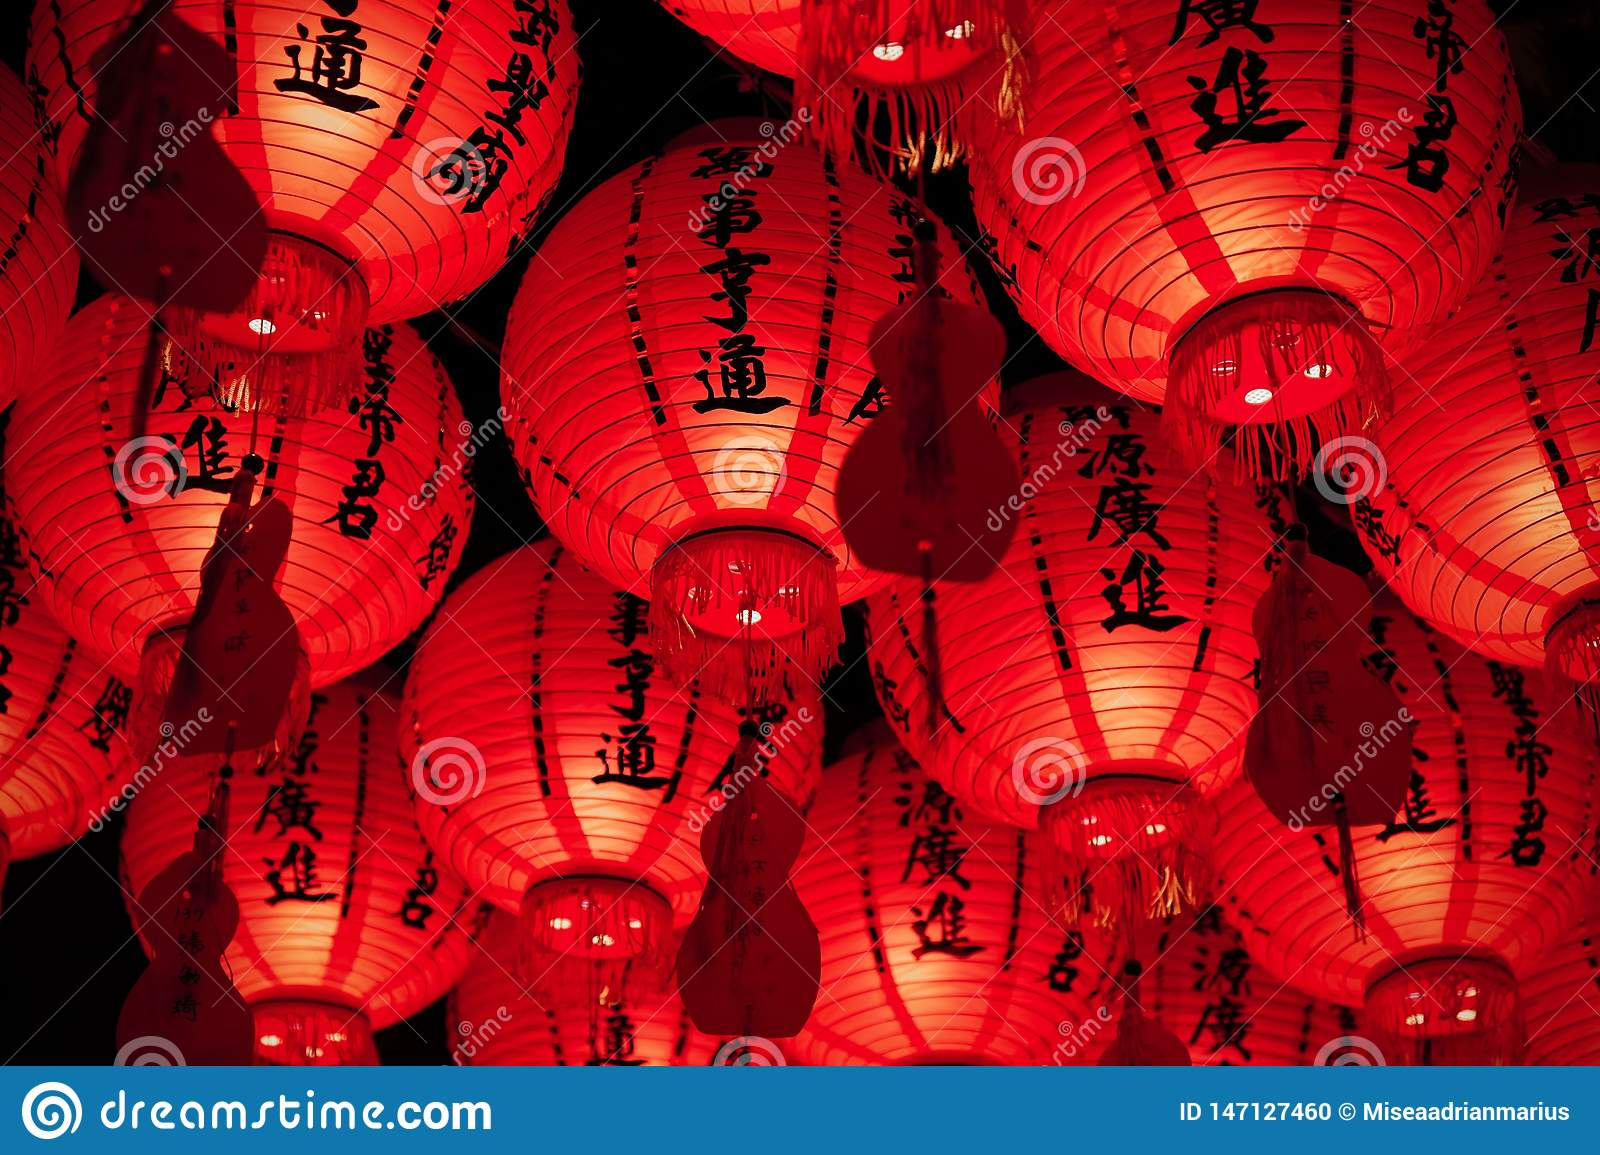 Red paper lanterns gathered together